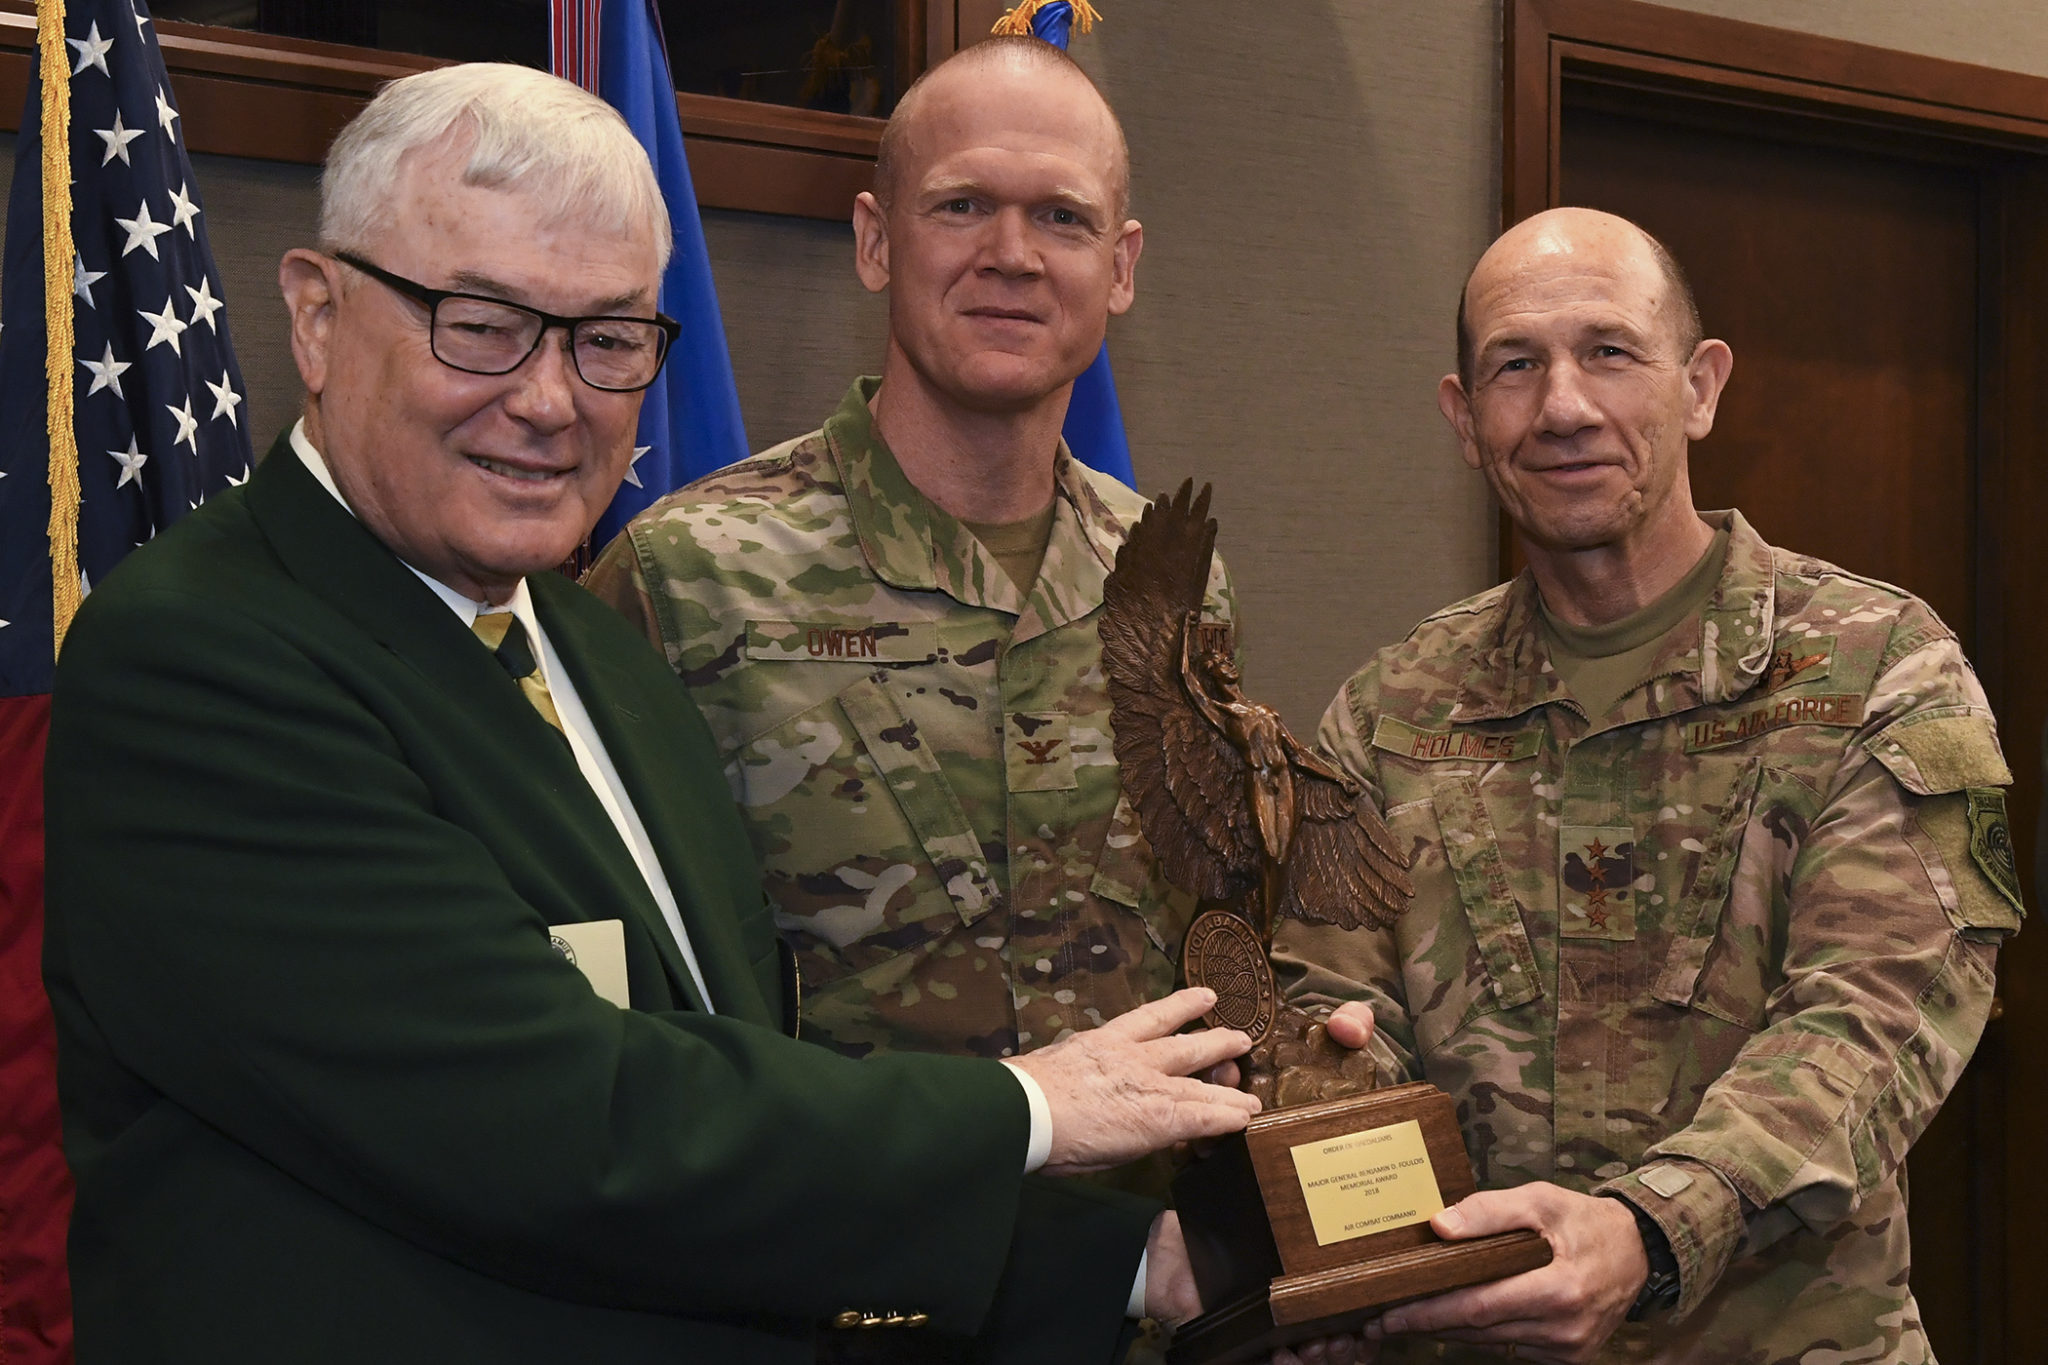 Major General Benjamin D. Foulois Memorial Award